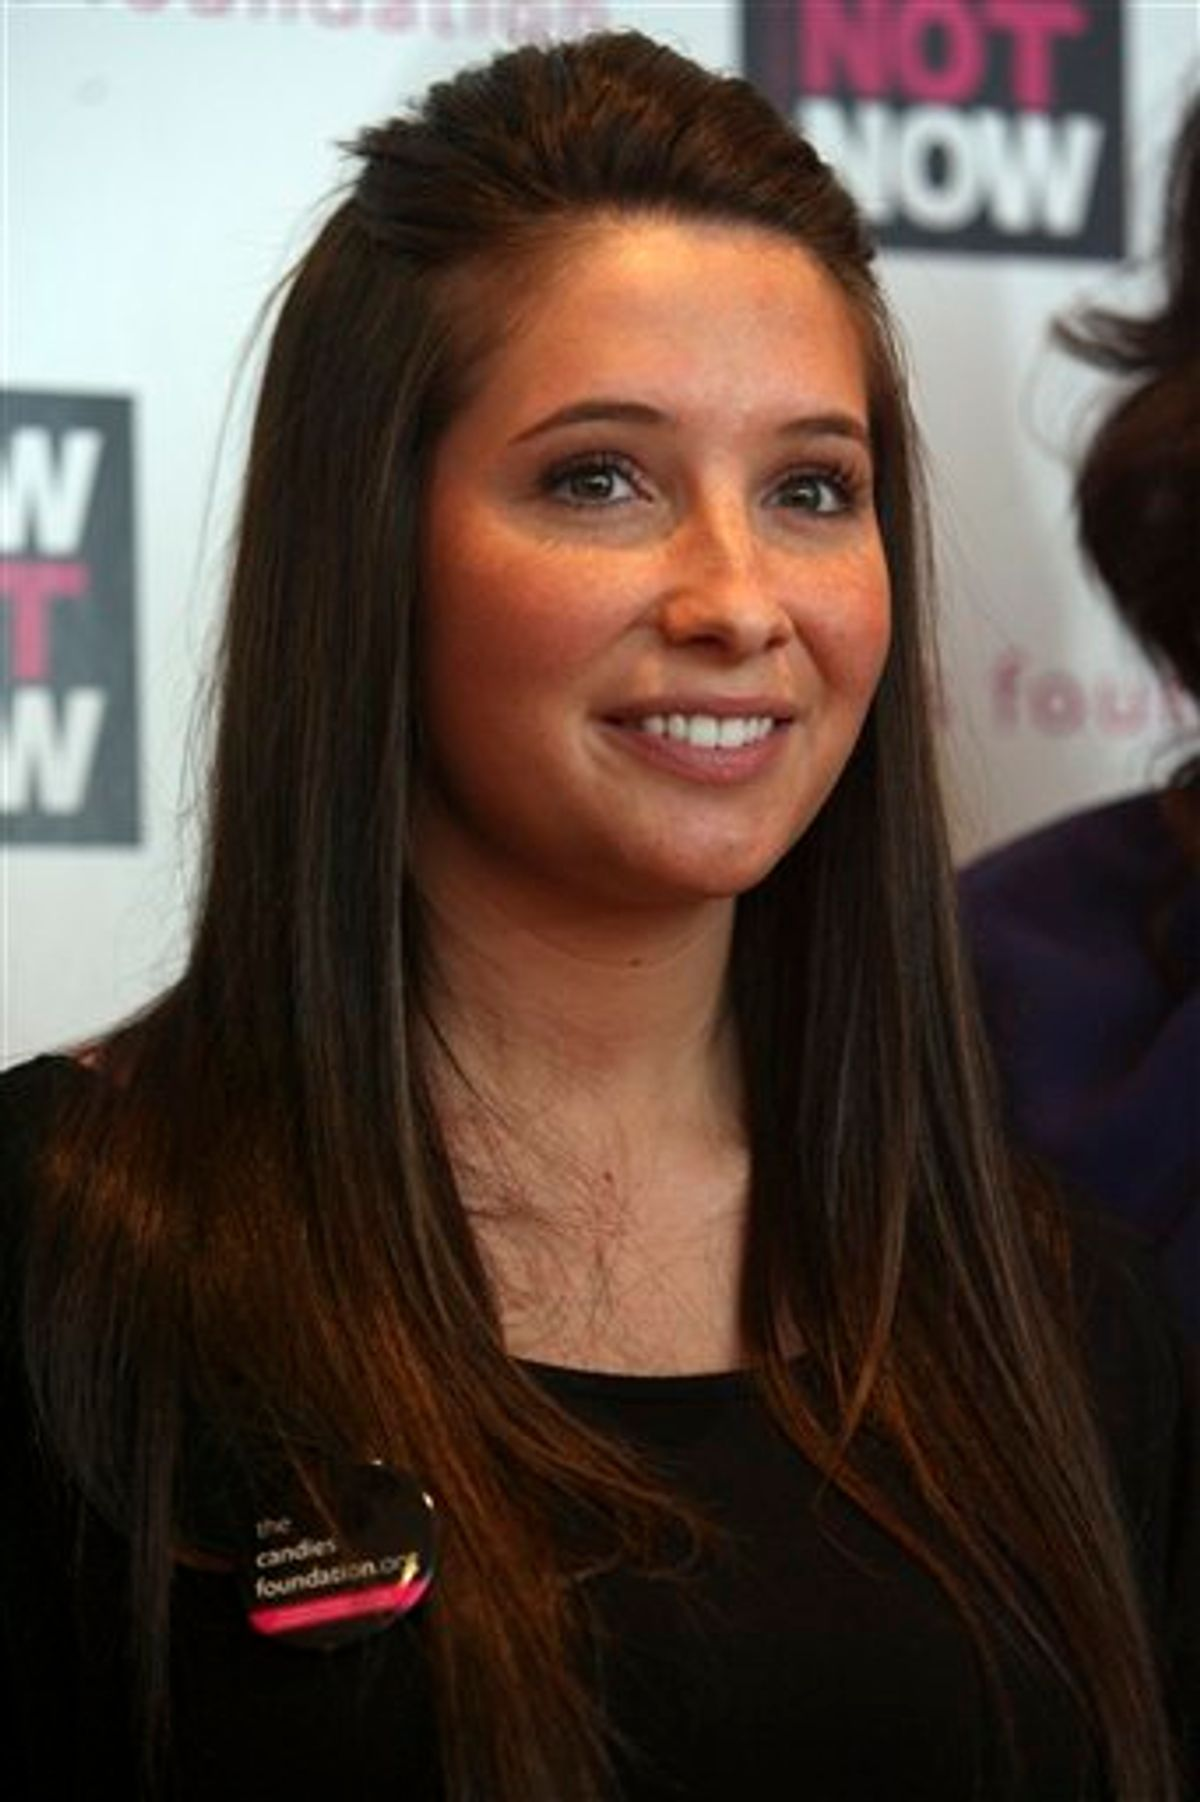 **FILE**  This Wednesday, May 6, 2009 file photo shows Bristol Palin, daughter of Alaska Gov. Sarah Palin, as she poses for photographers on the red carpet during an event to promote National Teen Pregnancy Awareness Day in New York.    (AP Photo/Mary Altaffer, File)    (AP)